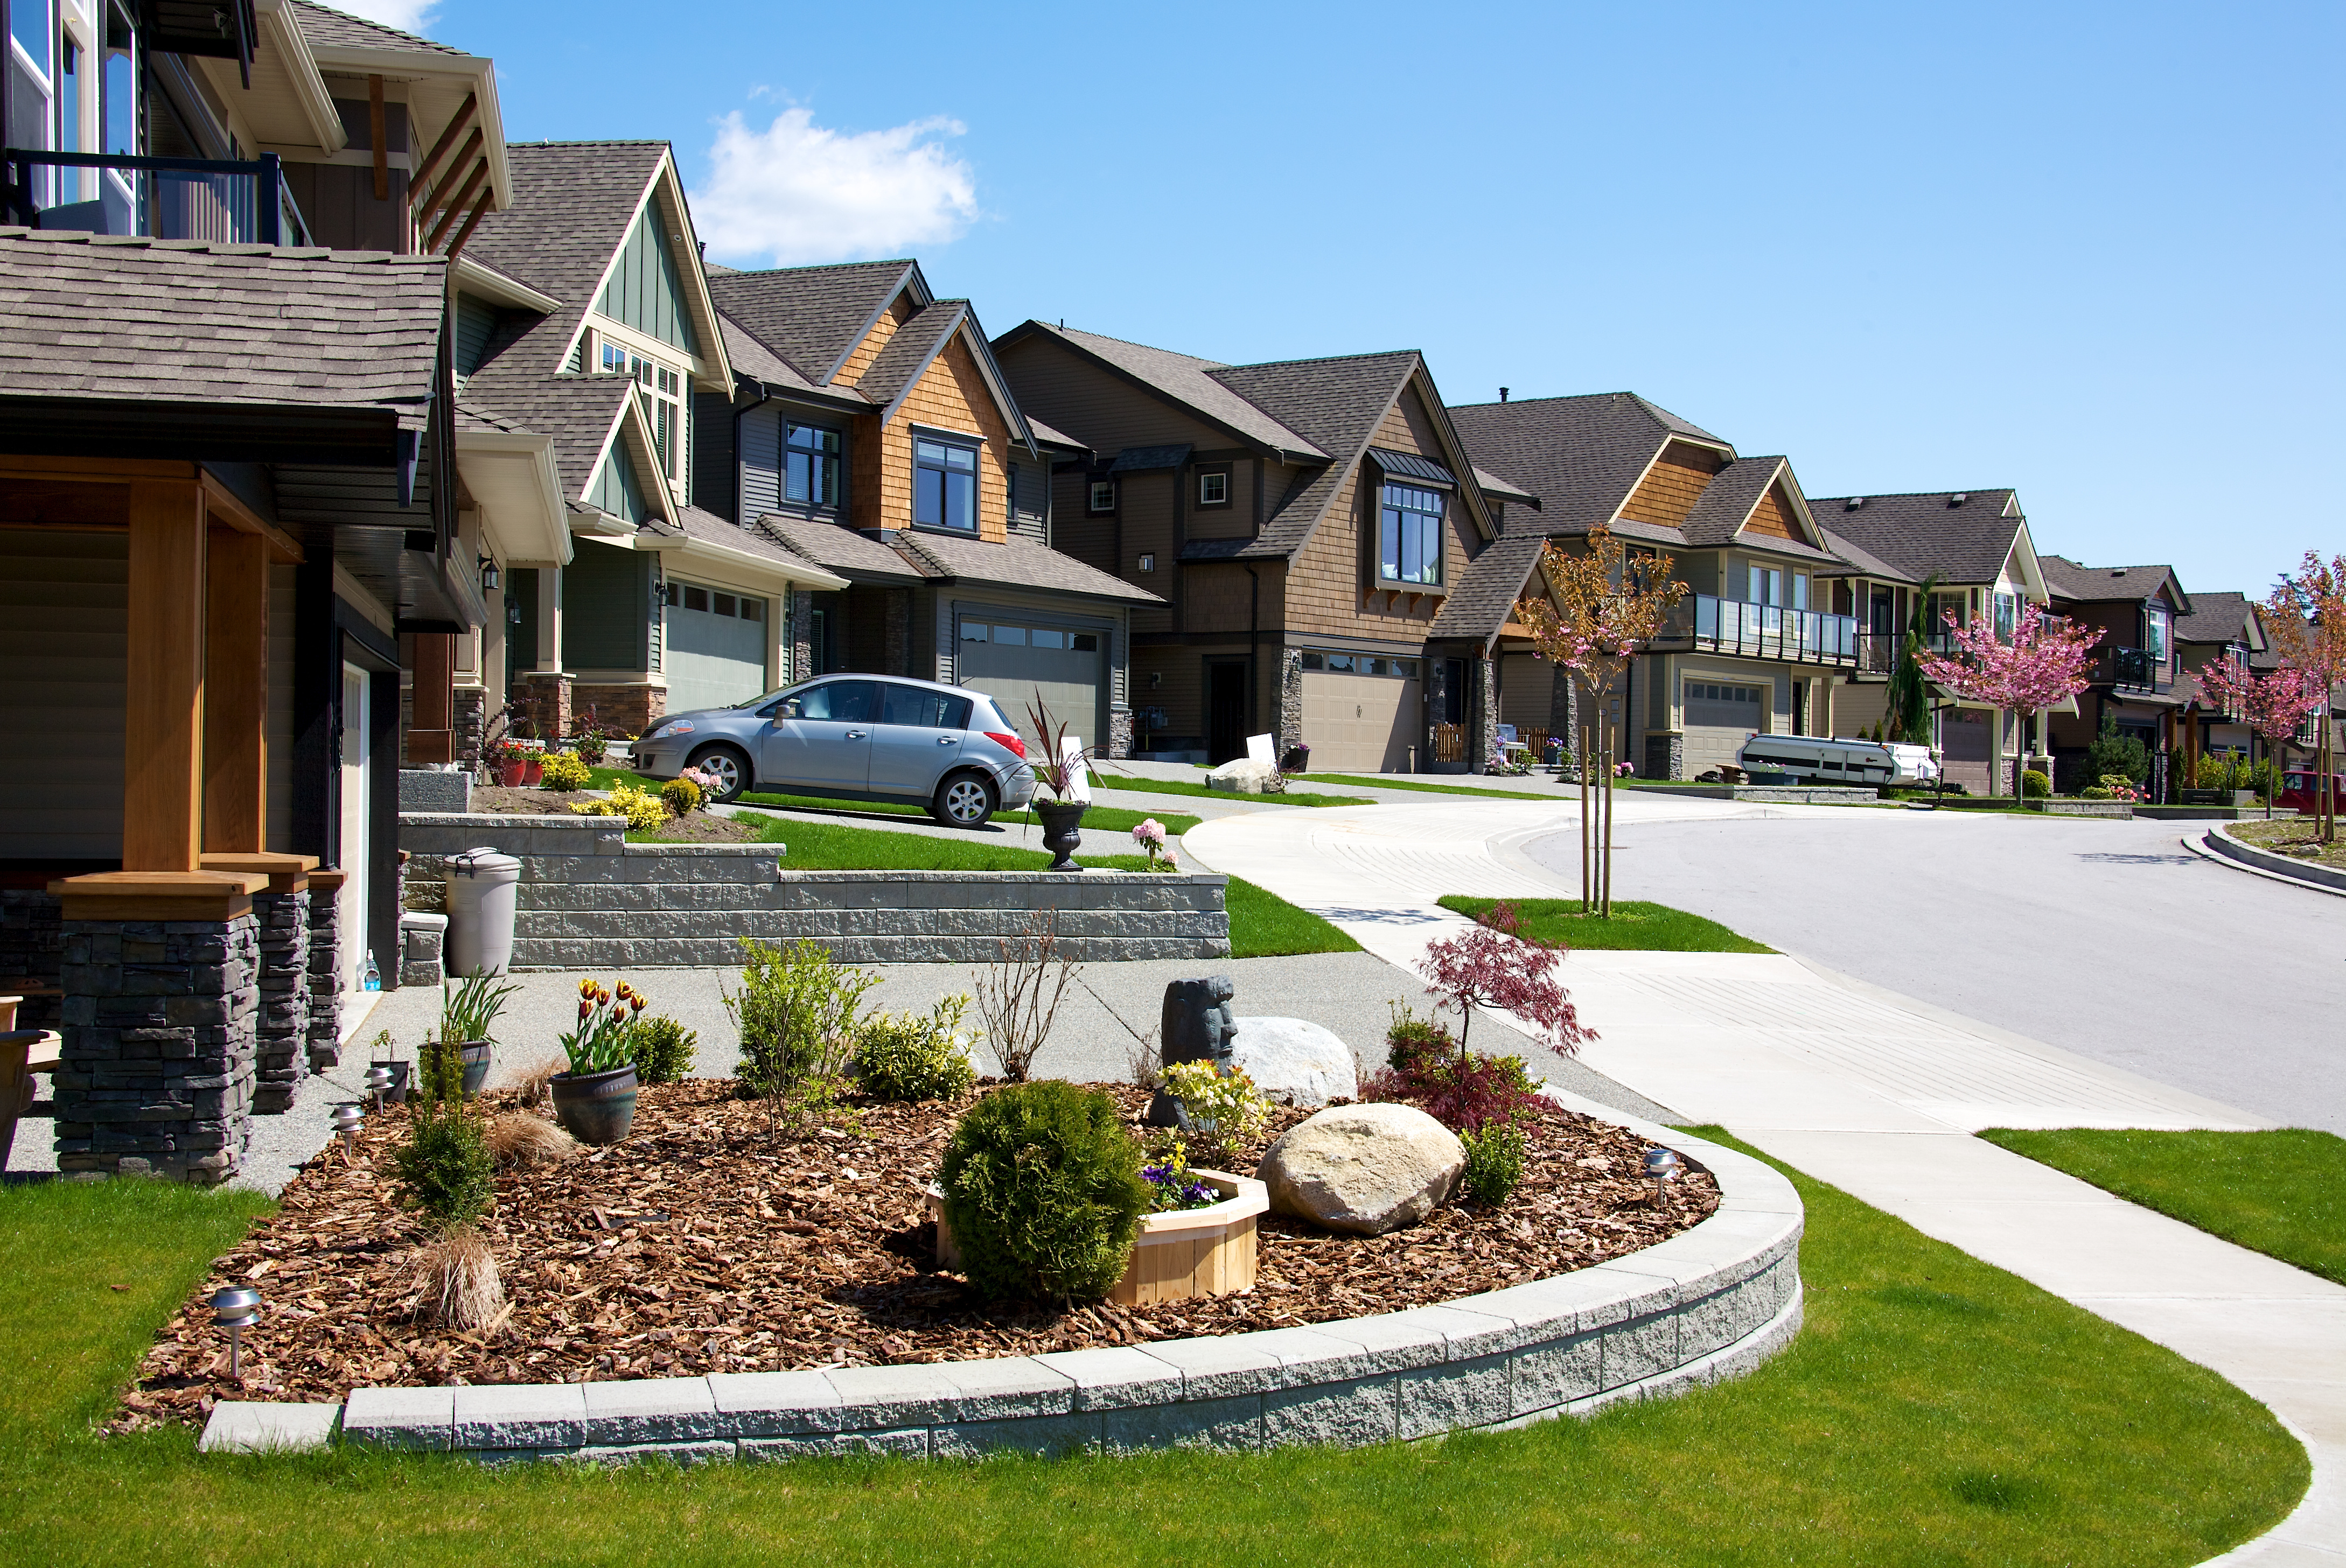 Elegent Homes in a Master Planned Community